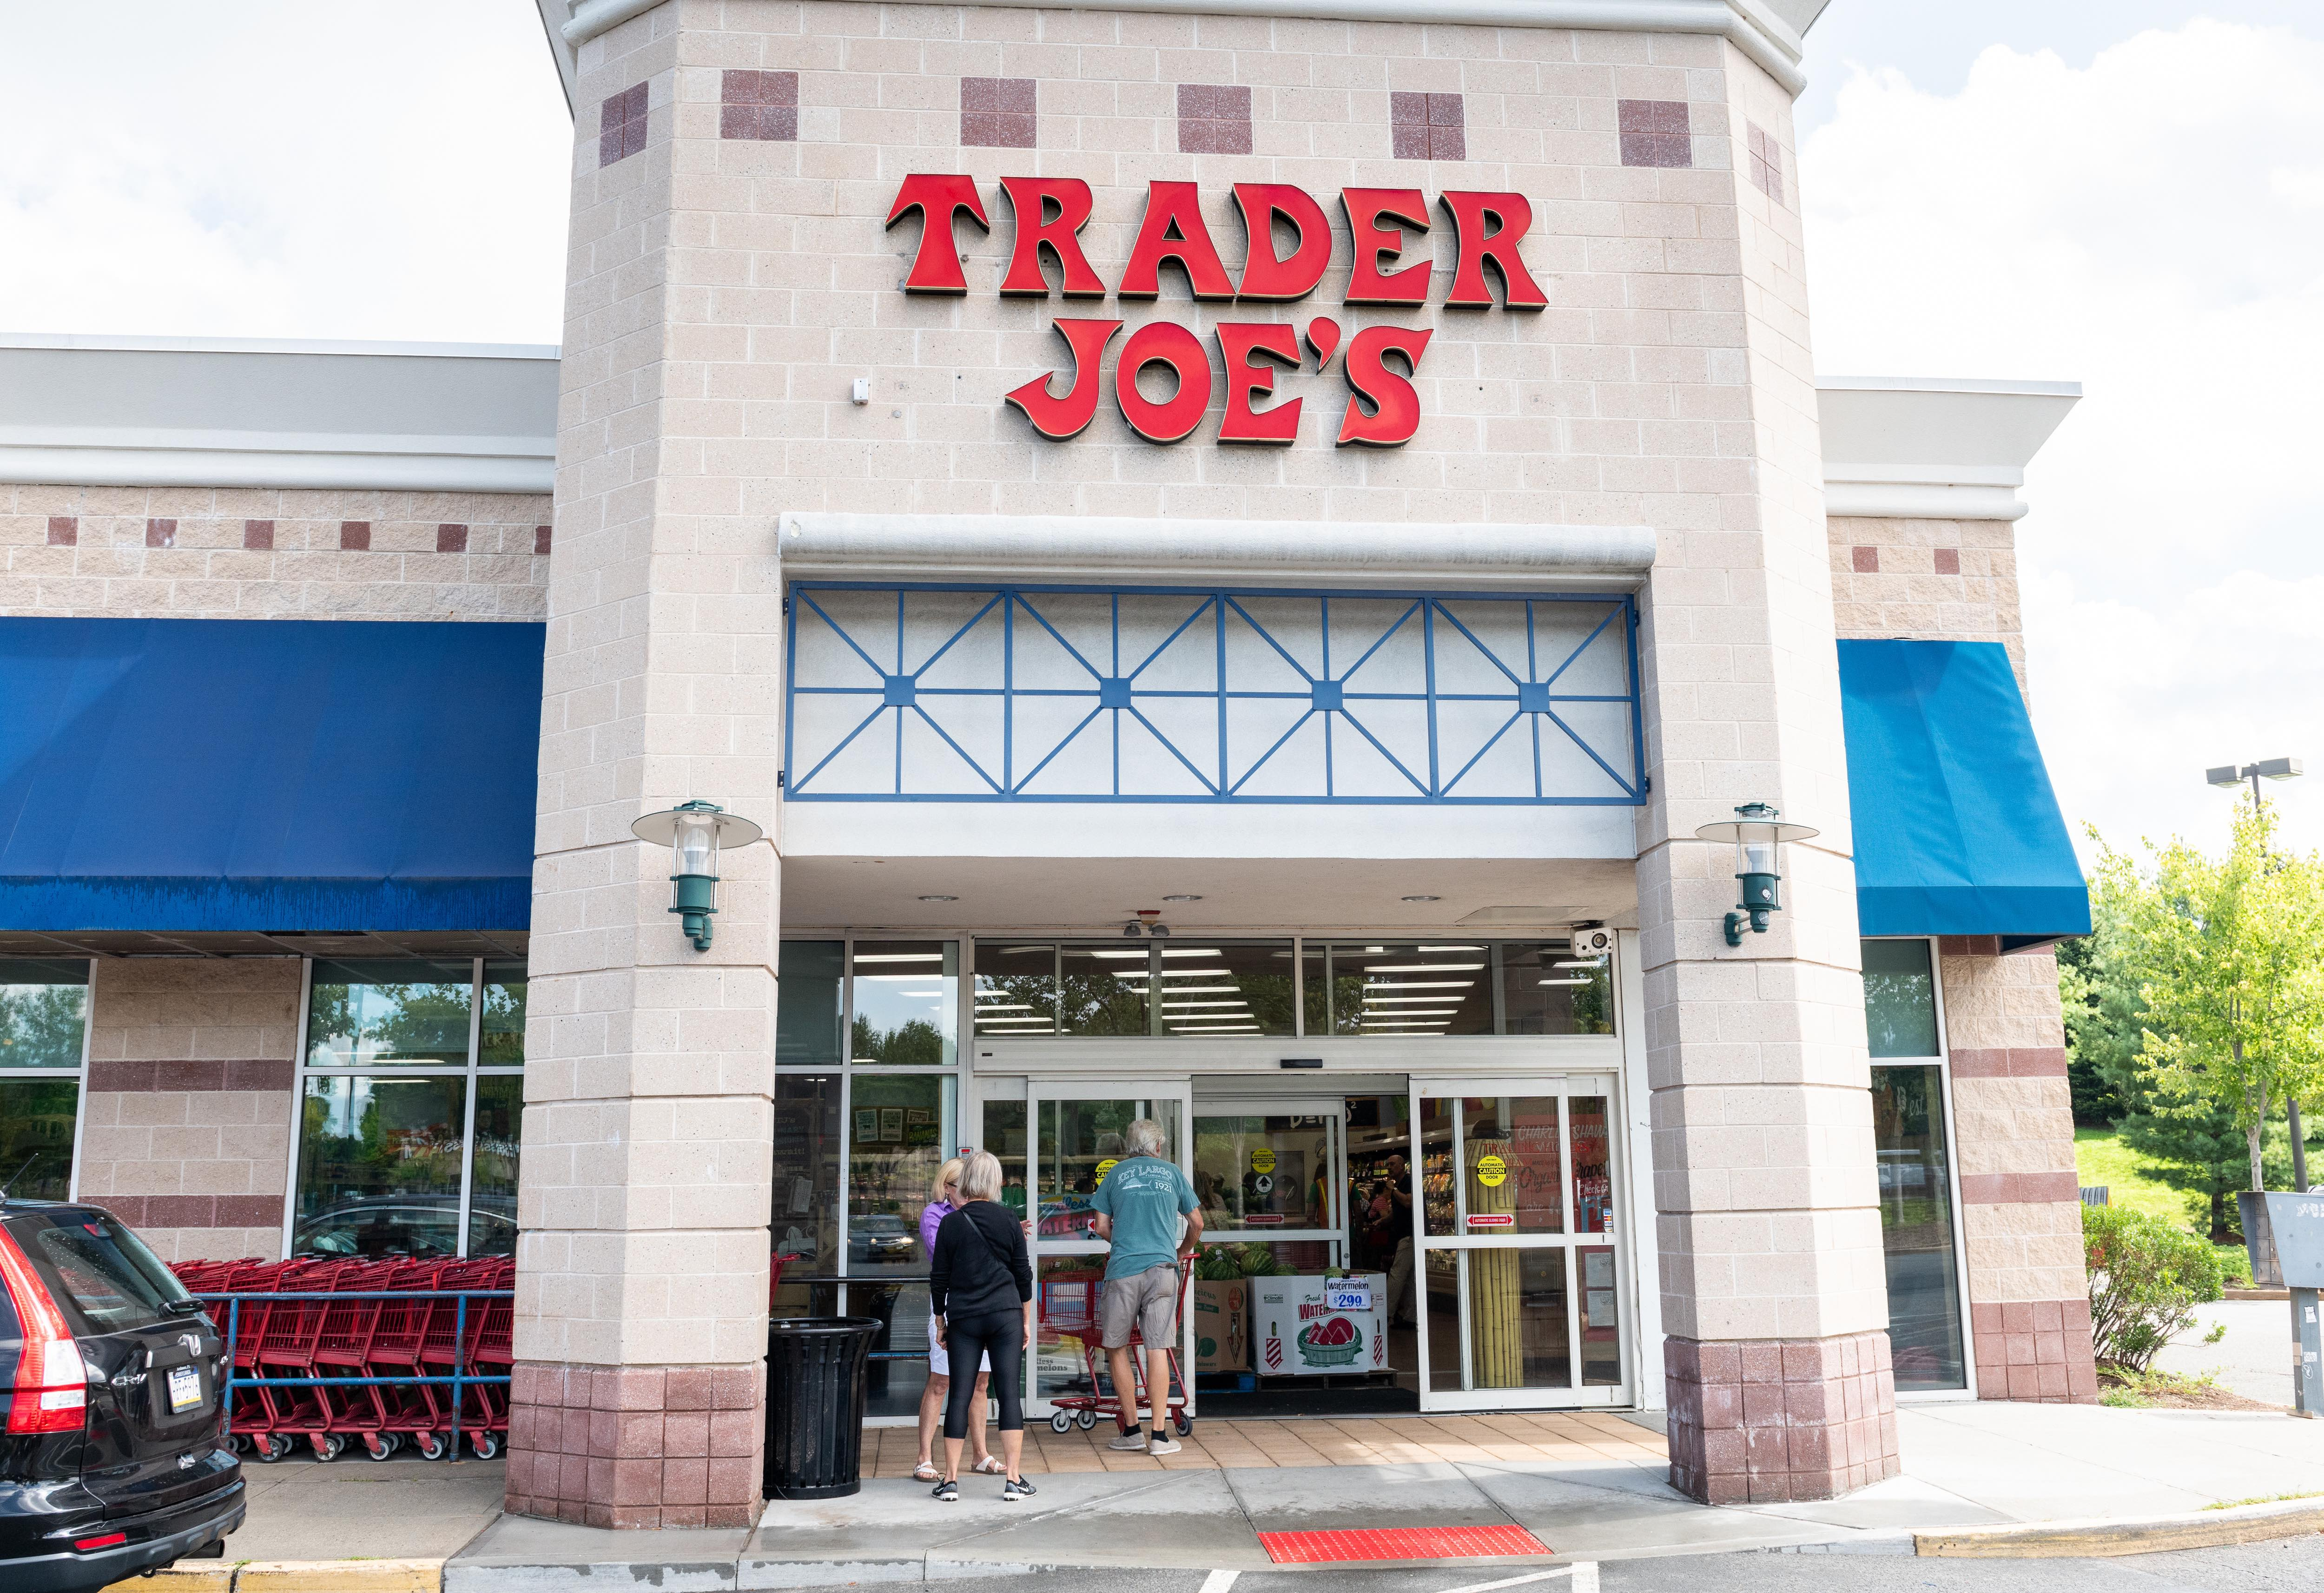 trader-joes-grocery-store-getty-1018